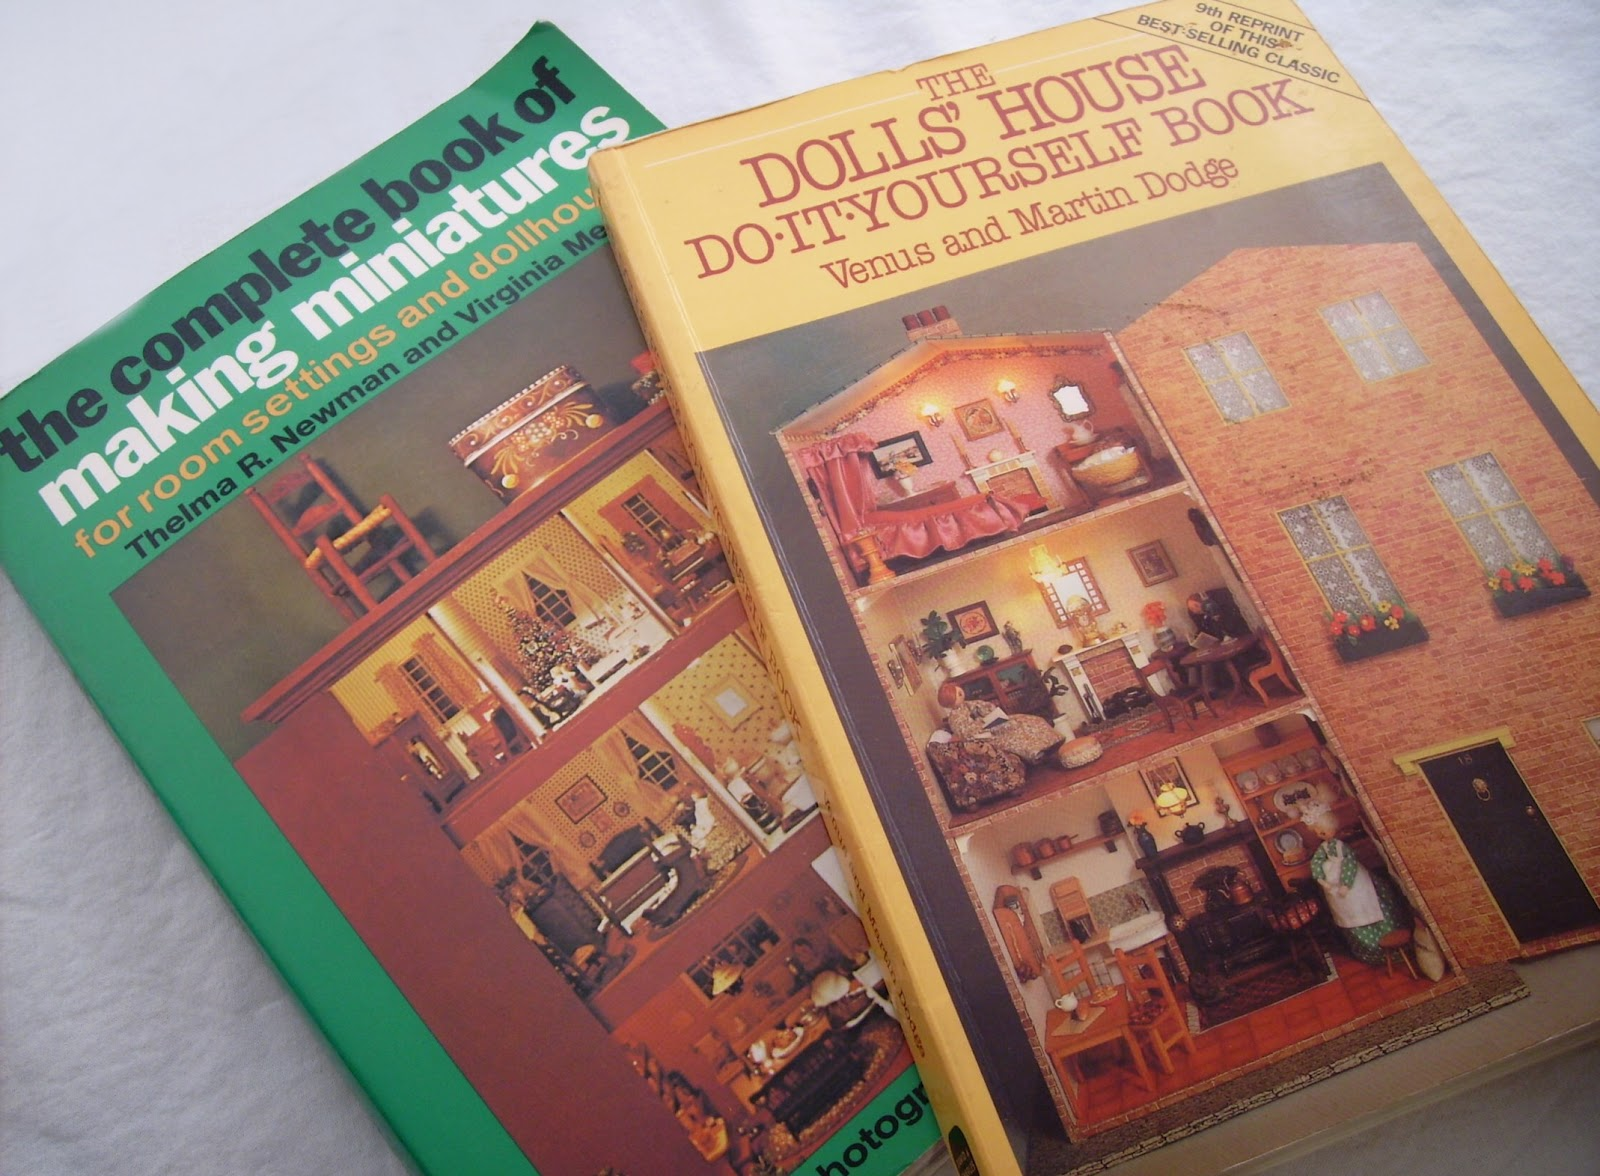 Candy apple crafts and sweet old things august 2012 the dolls house do it yourself book solutioingenieria Choice Image